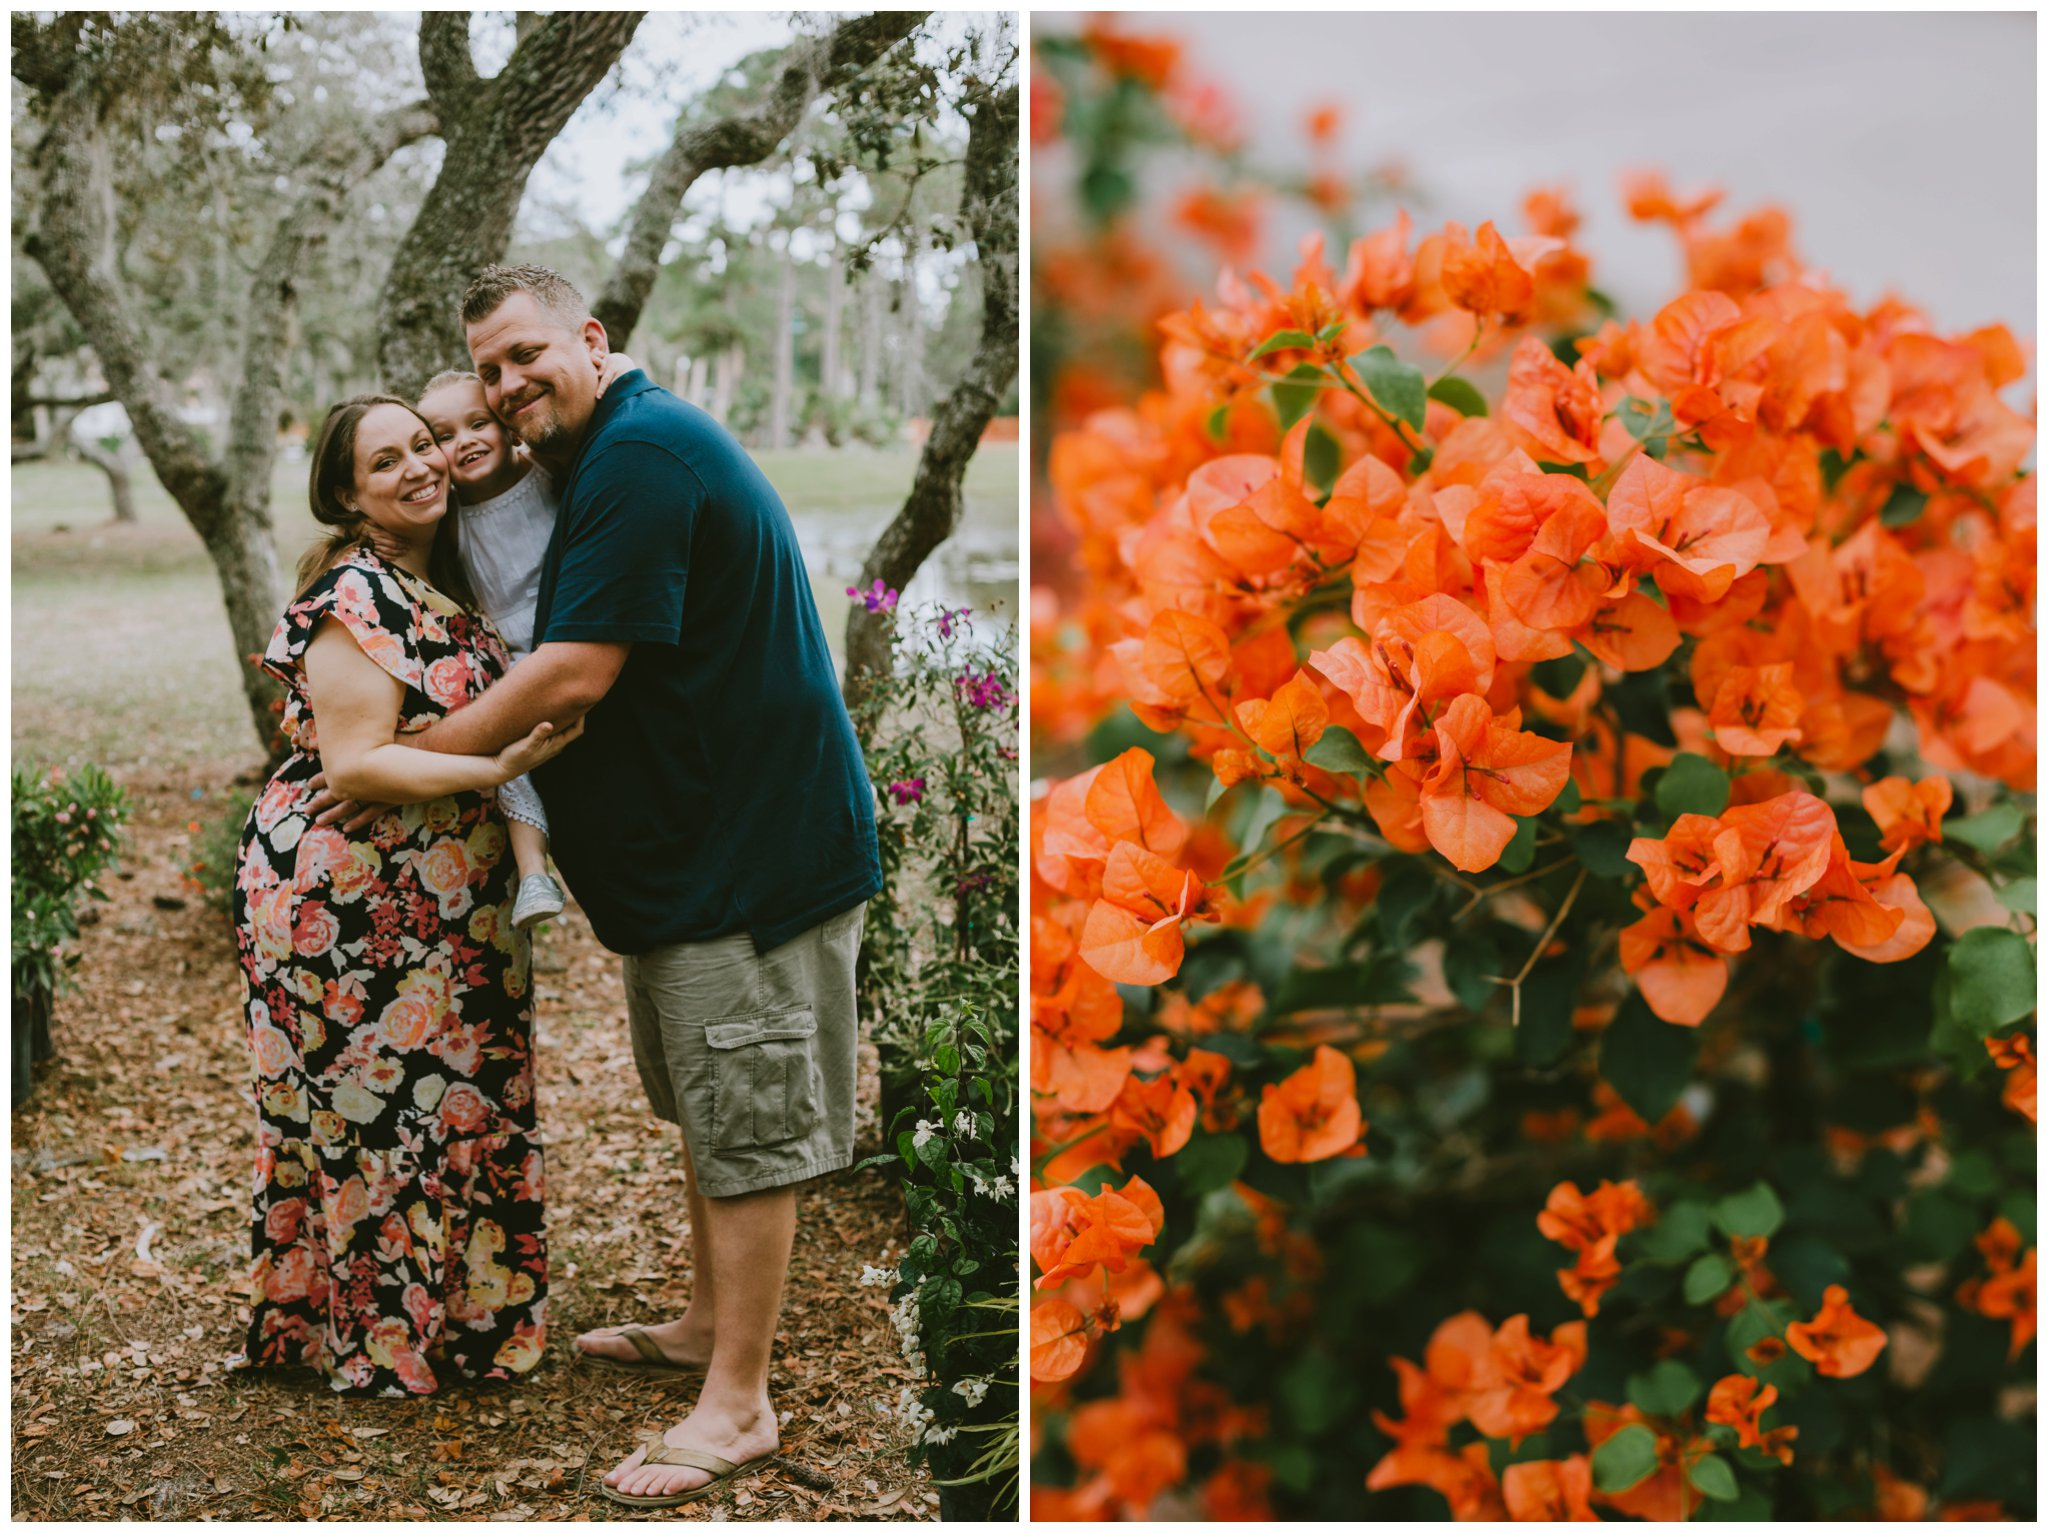 Kimberly Smith Photography| Port St Lucie Botanical Gardens| Maternity Photos| Jupiter Florida Photographer | Stuart Fl photographer_0191.jpg